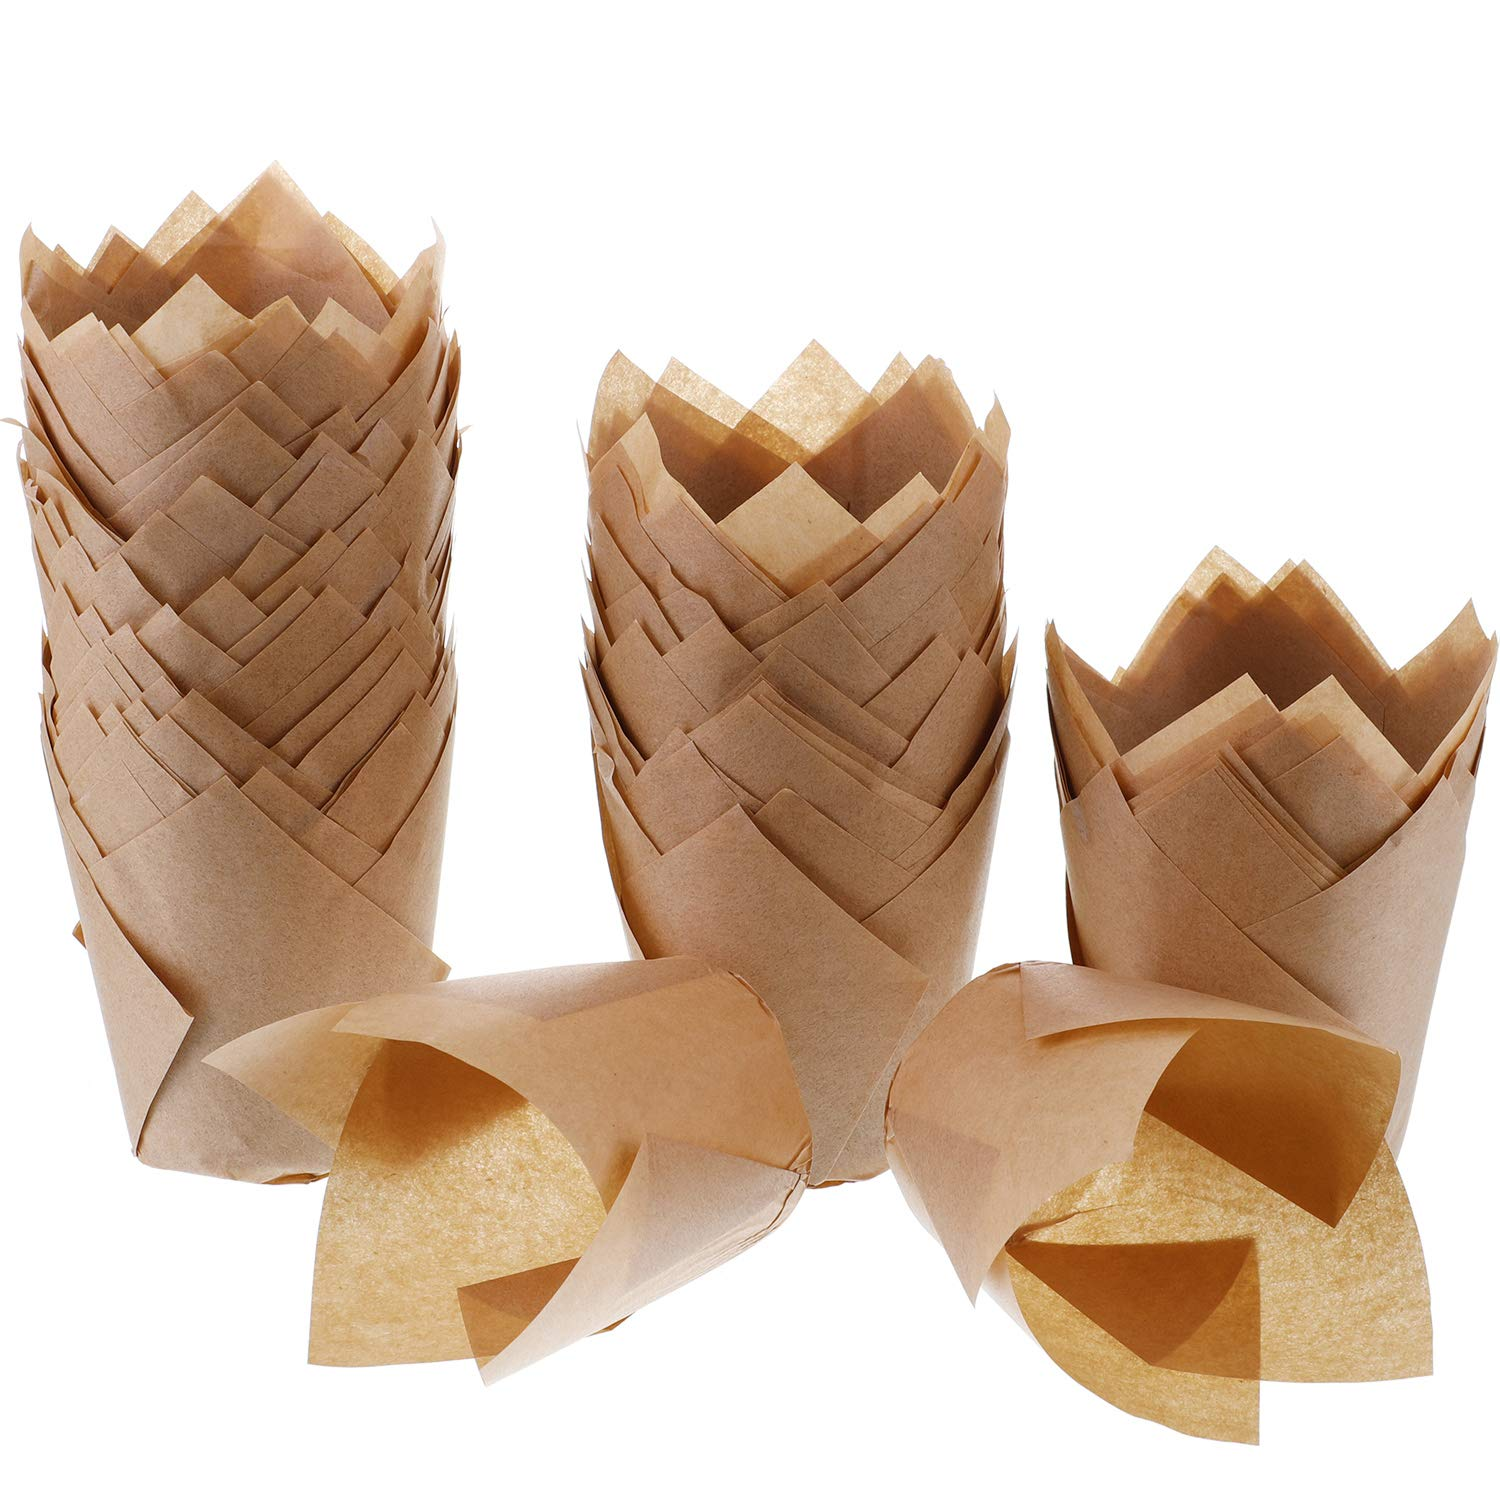 Natural Color Hestya 150 Pieces Tulip Muffin Baking Cups Cupcake Muffin Liners Baking Cup Holder